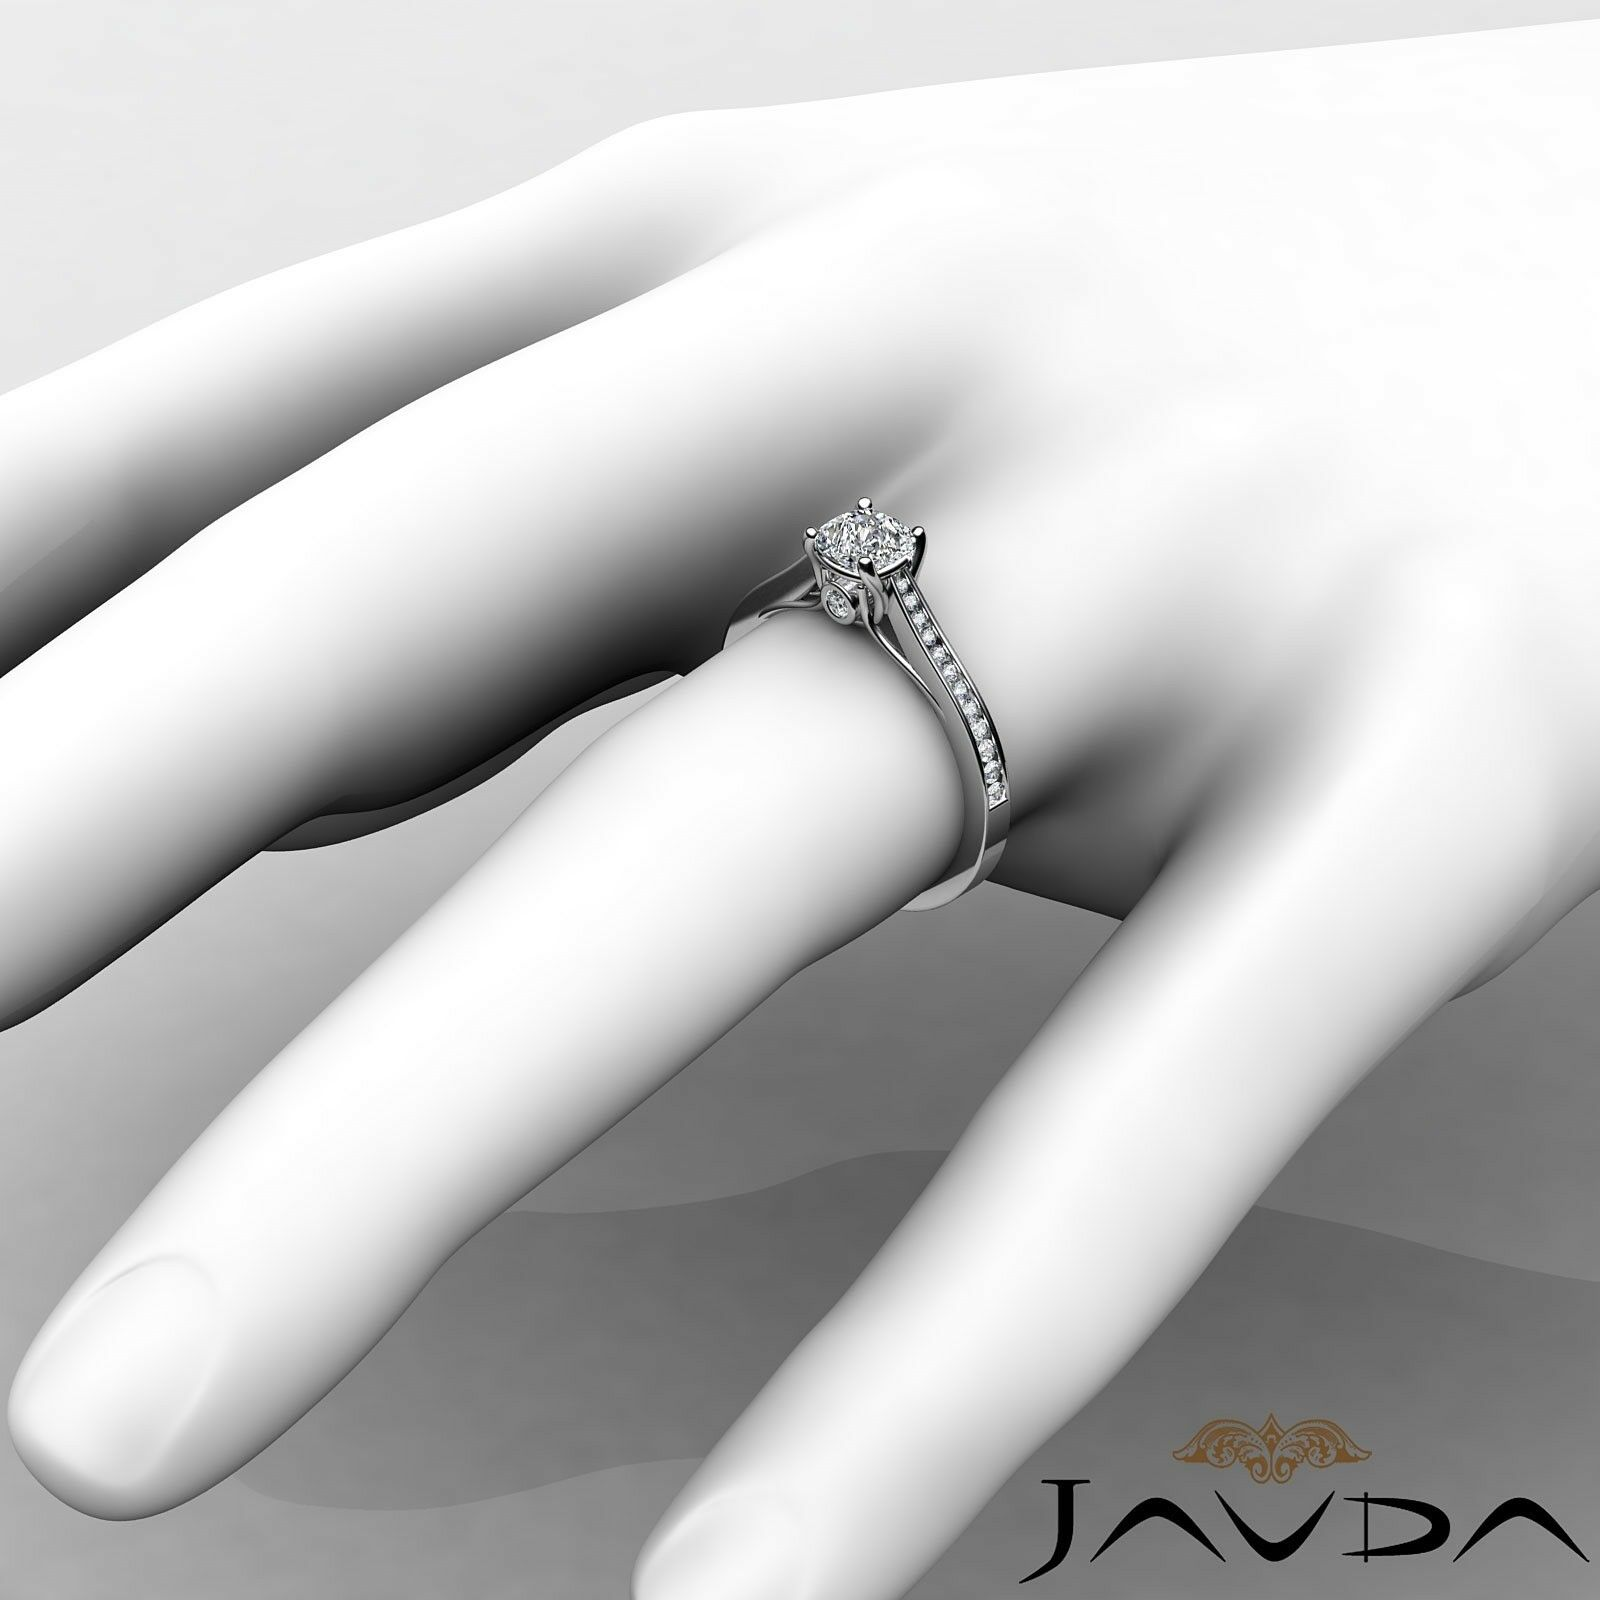 1.1ctw Channel Bezel Prong Cushion Diamond Engagement Ring GIA G-VVS2 White Gold 2